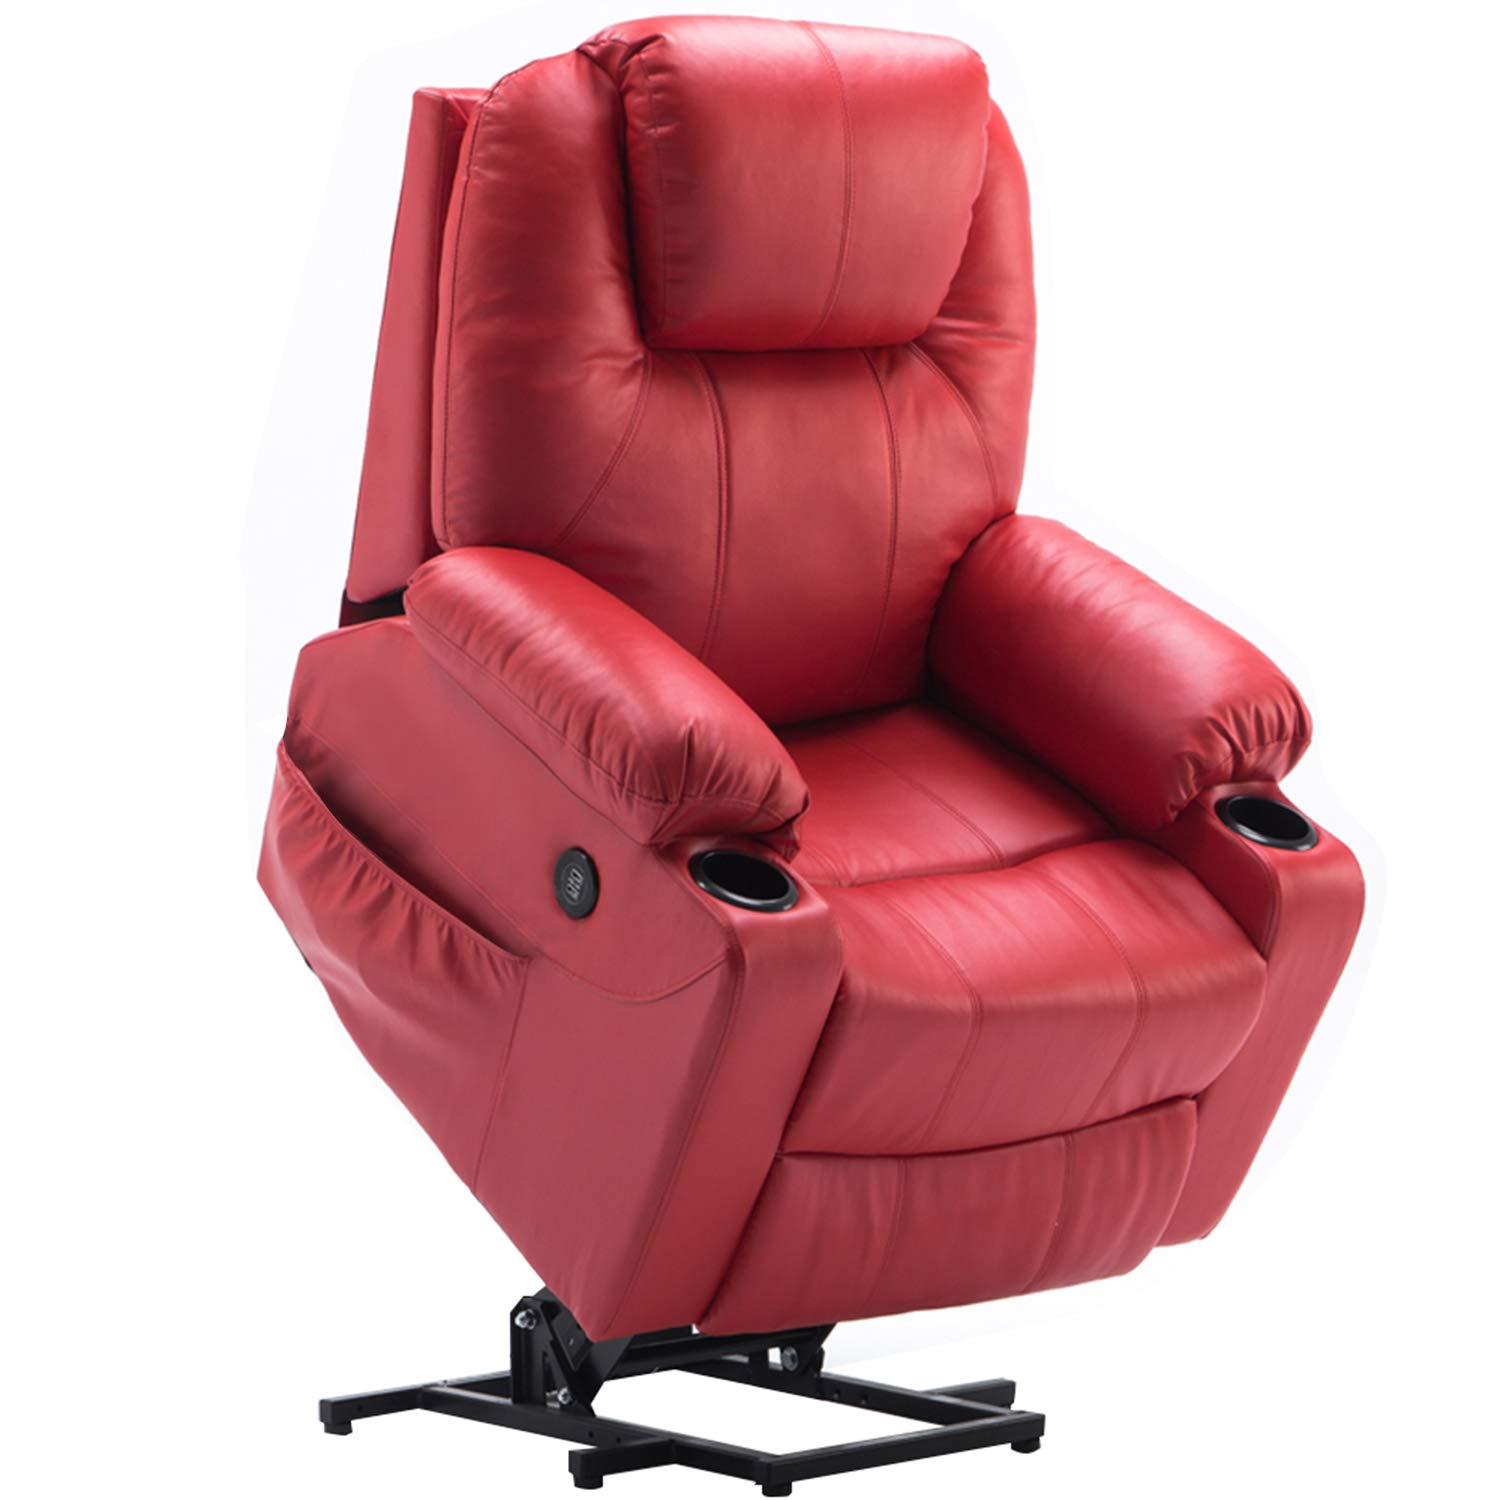 Electric Power Lift Chair Massage Sofa Recliner Heated Chair Lounge